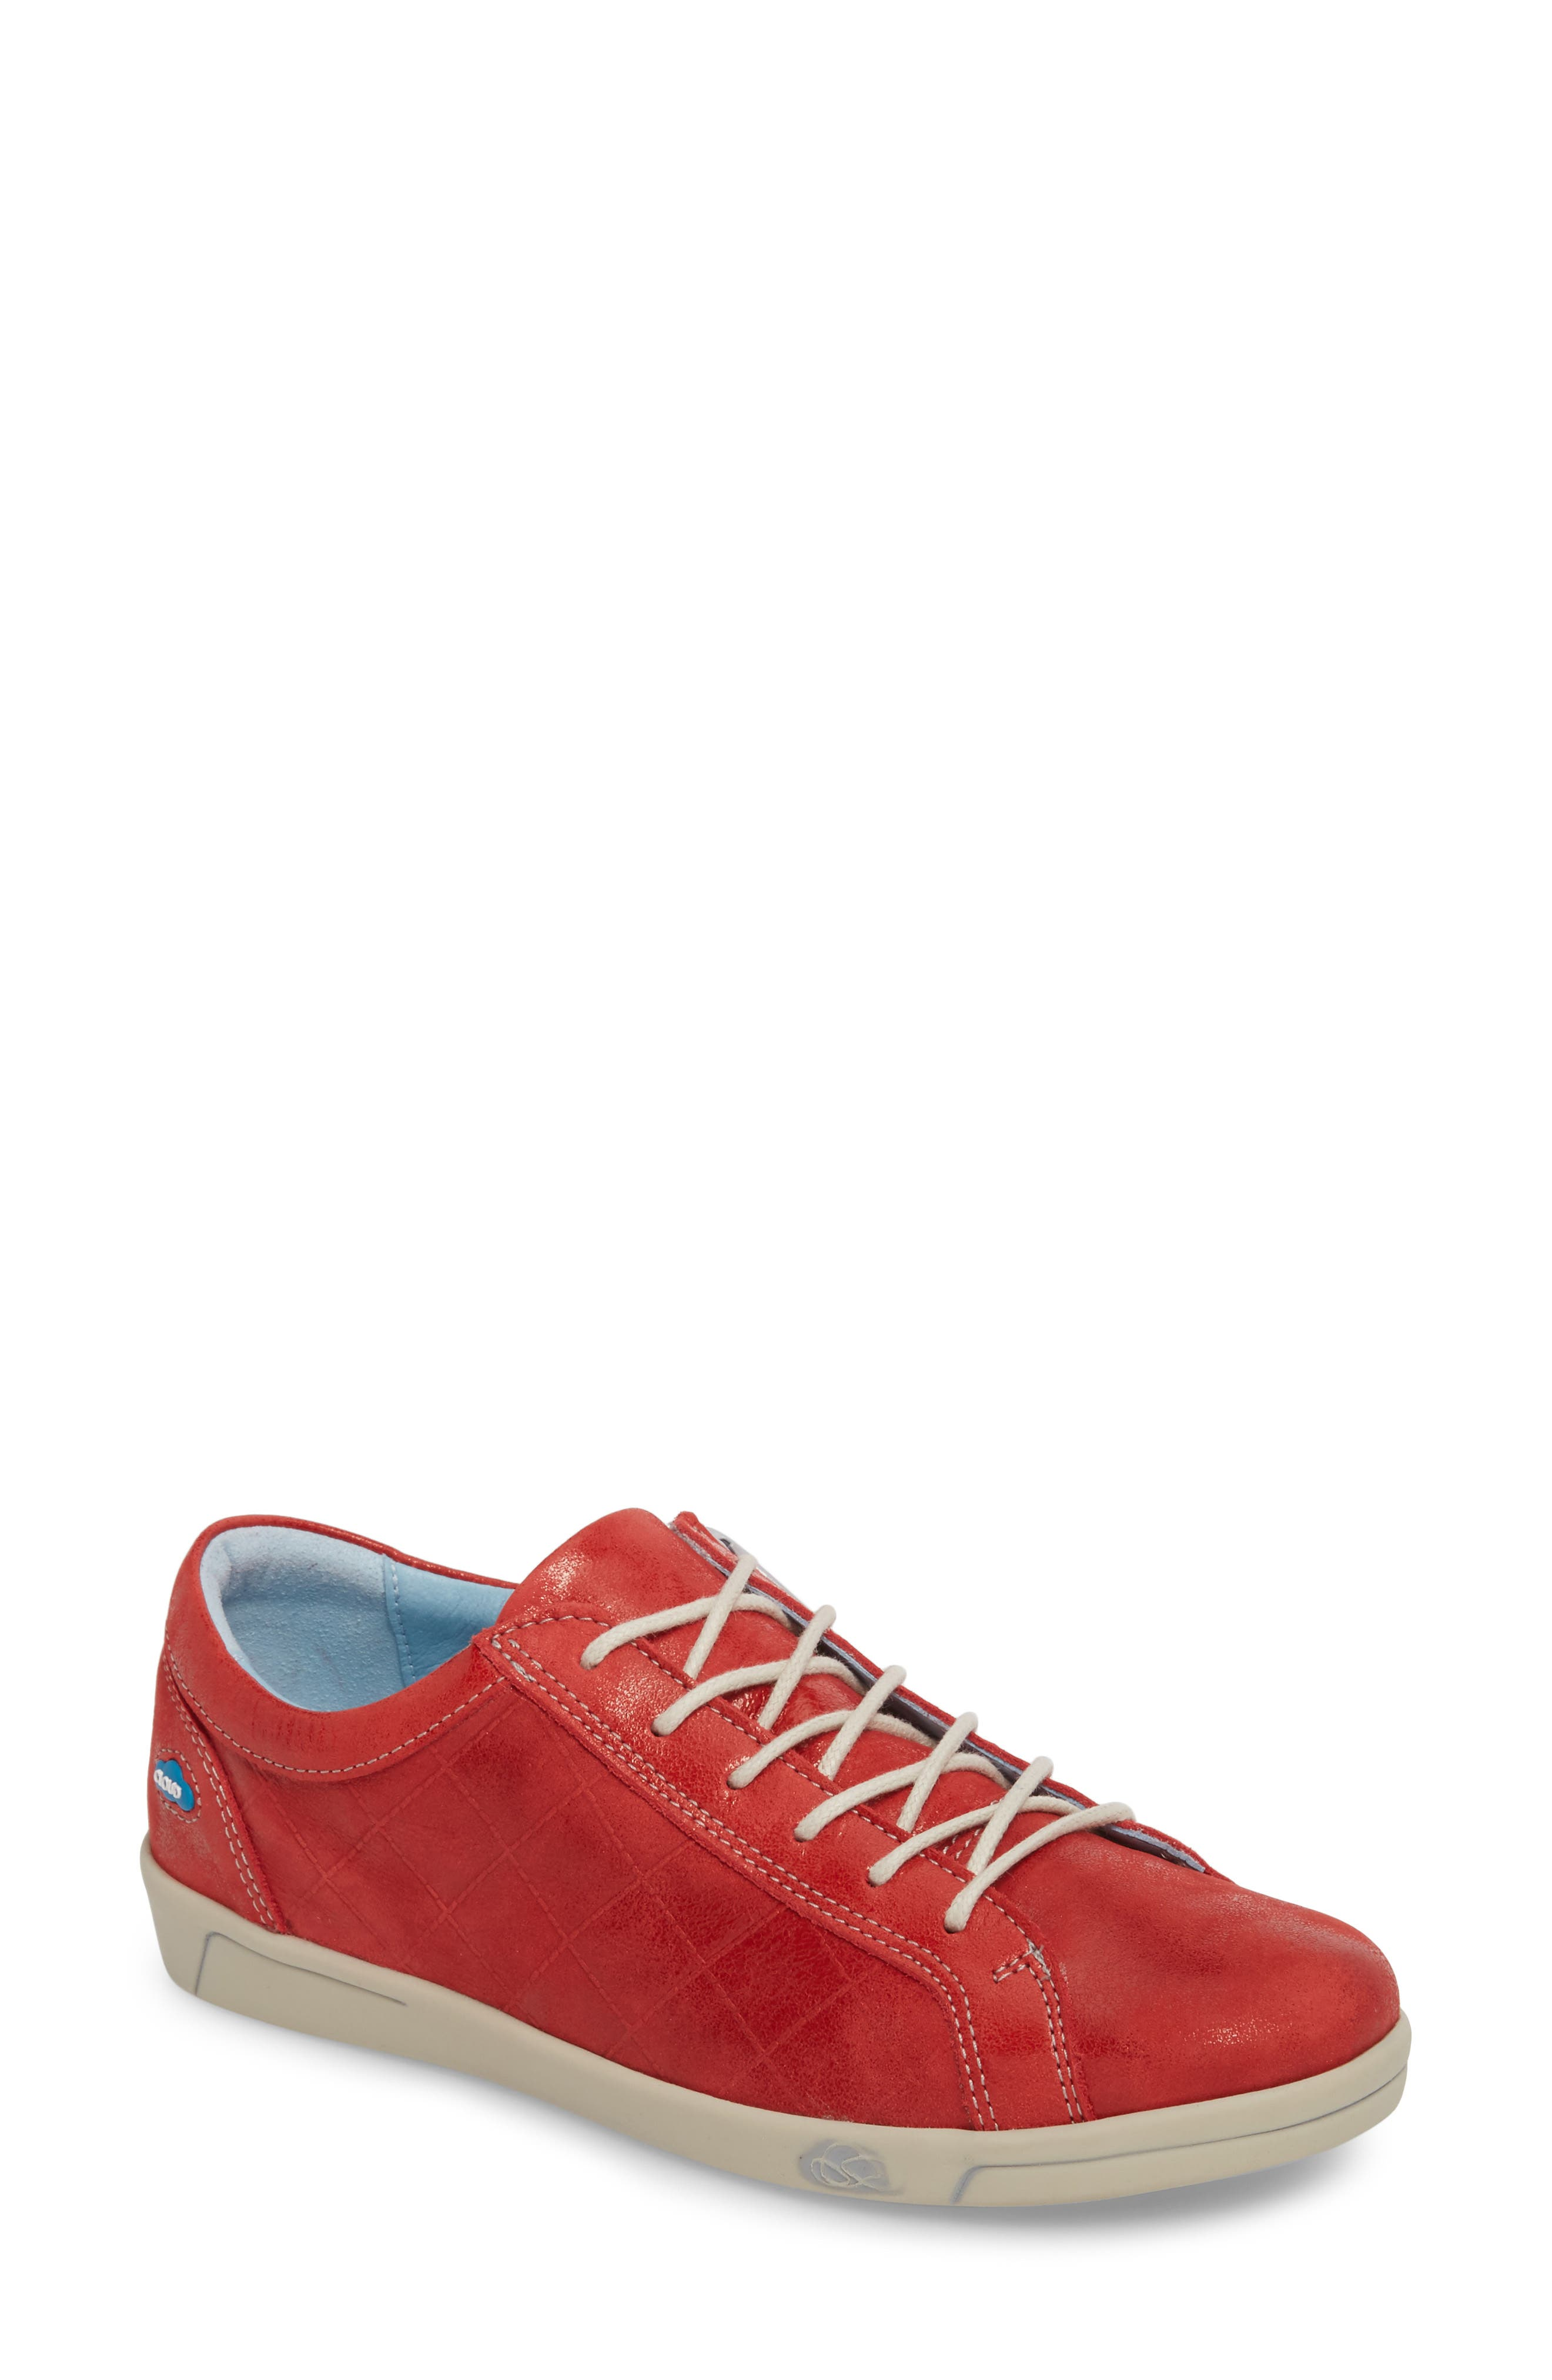 Alessia Sneaker,                             Main thumbnail 1, color,                             Red Stinger Leather